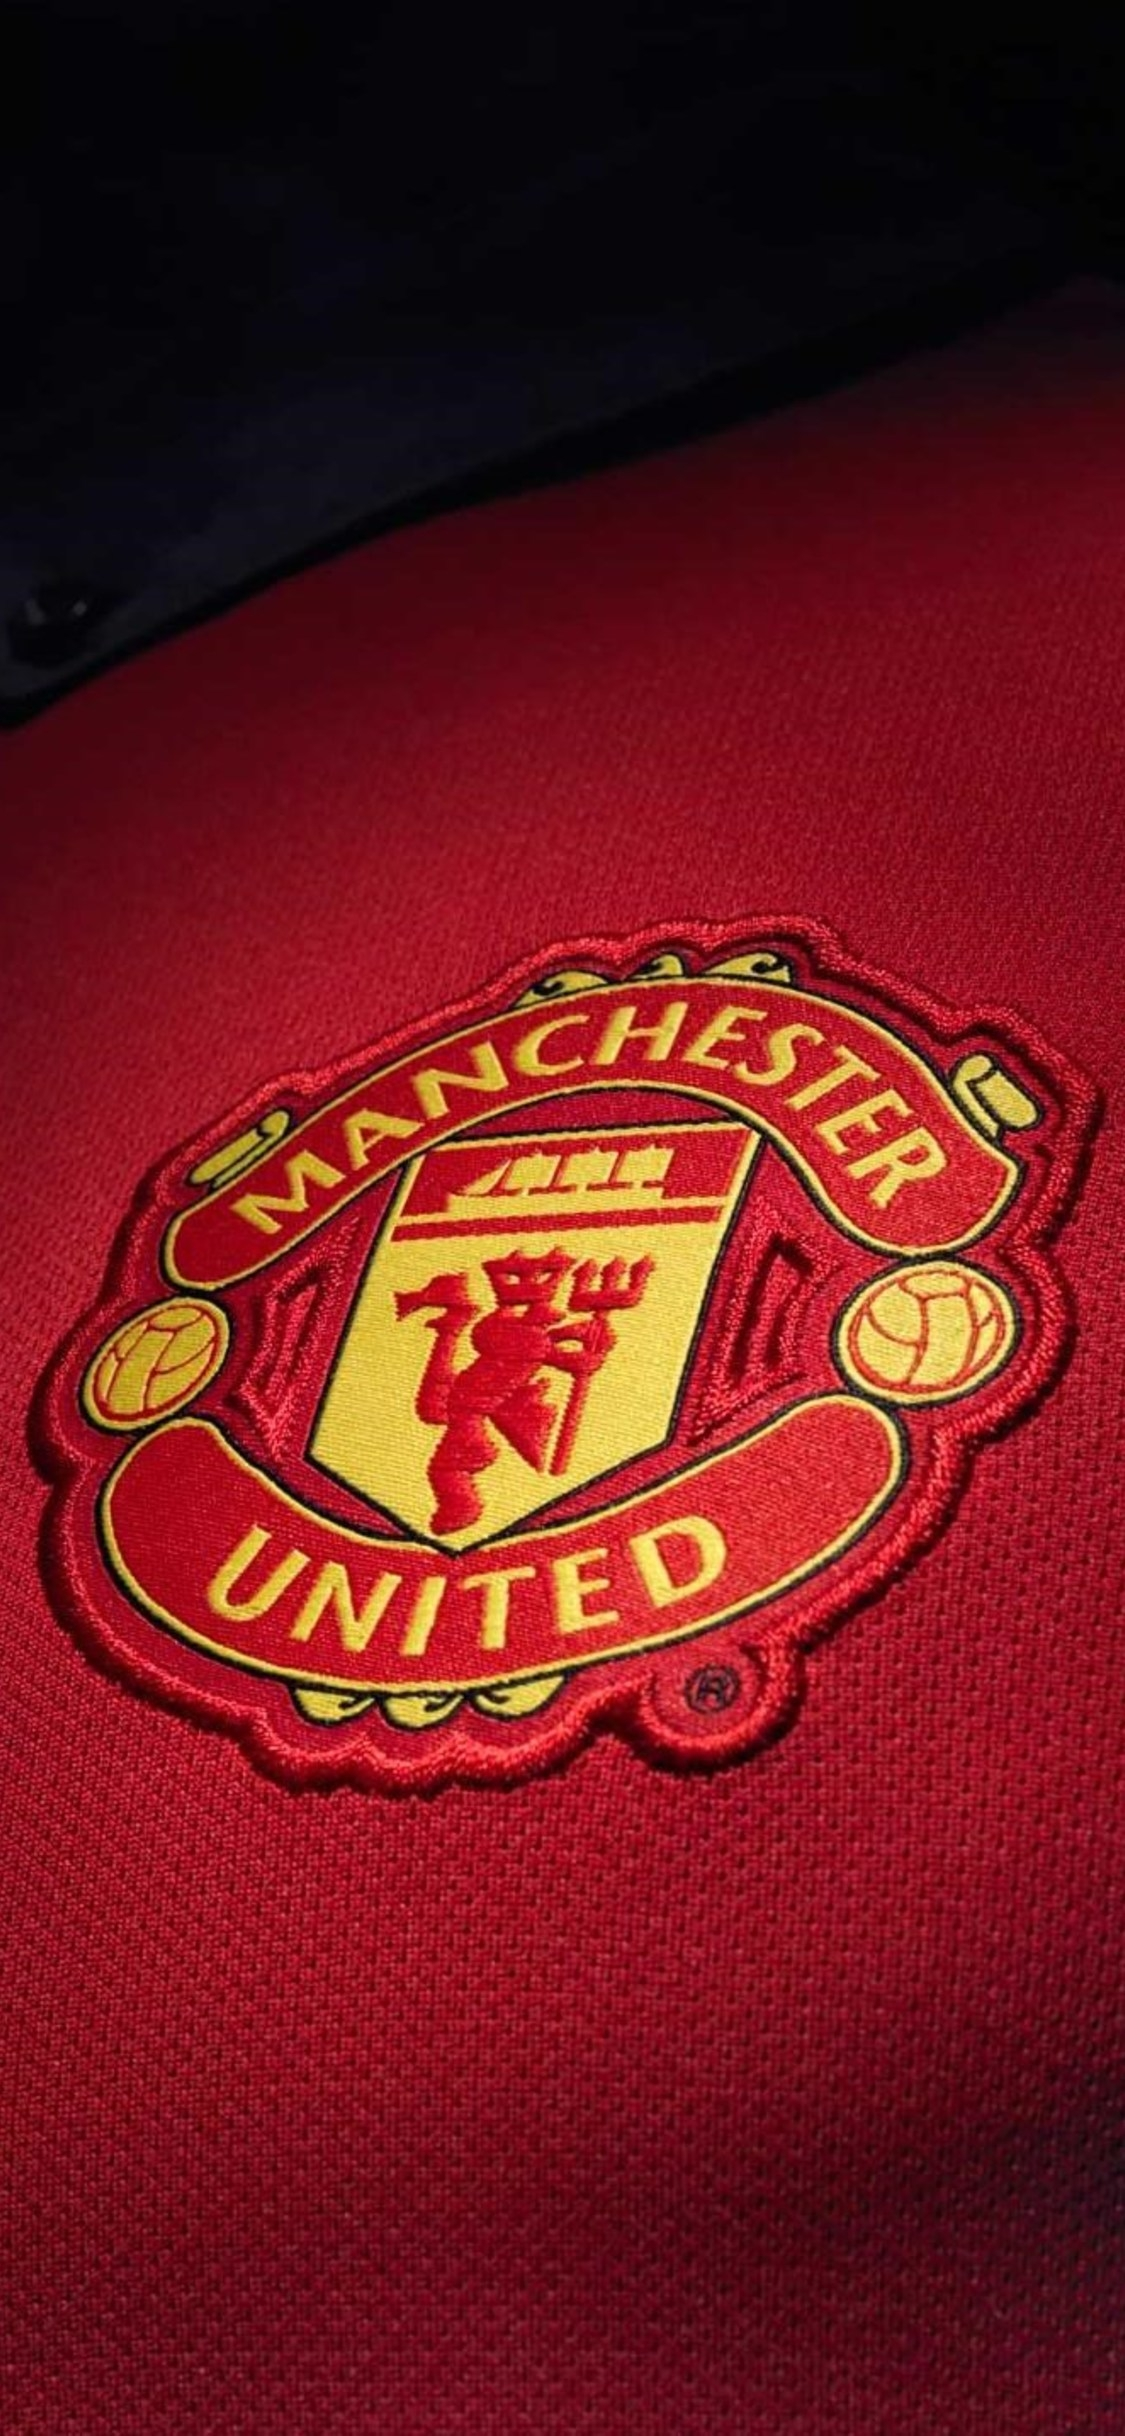 Manchester United Iphone Wallpaper Posted By Zoey Cunningham